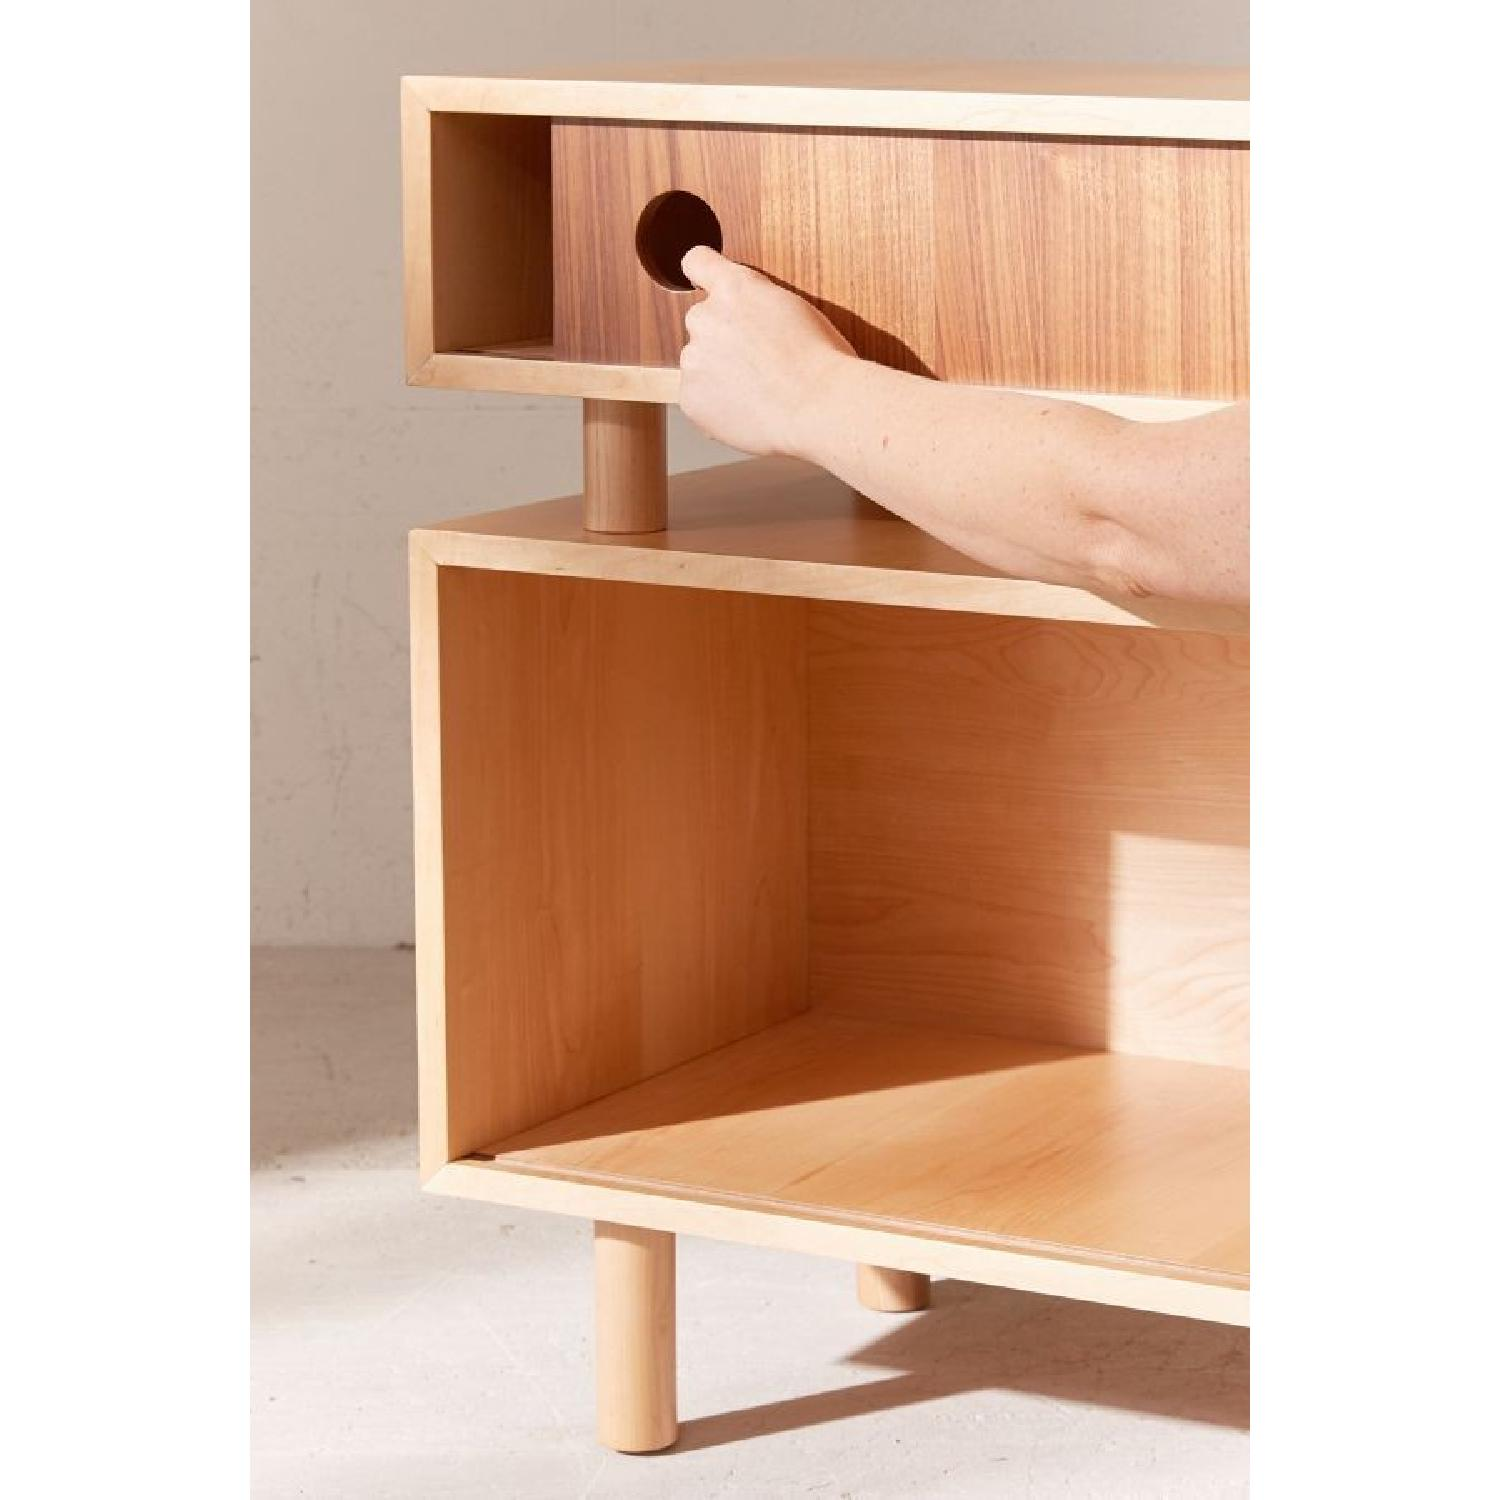 Urban Outfitters Hamilton Wood Media Console - image-10